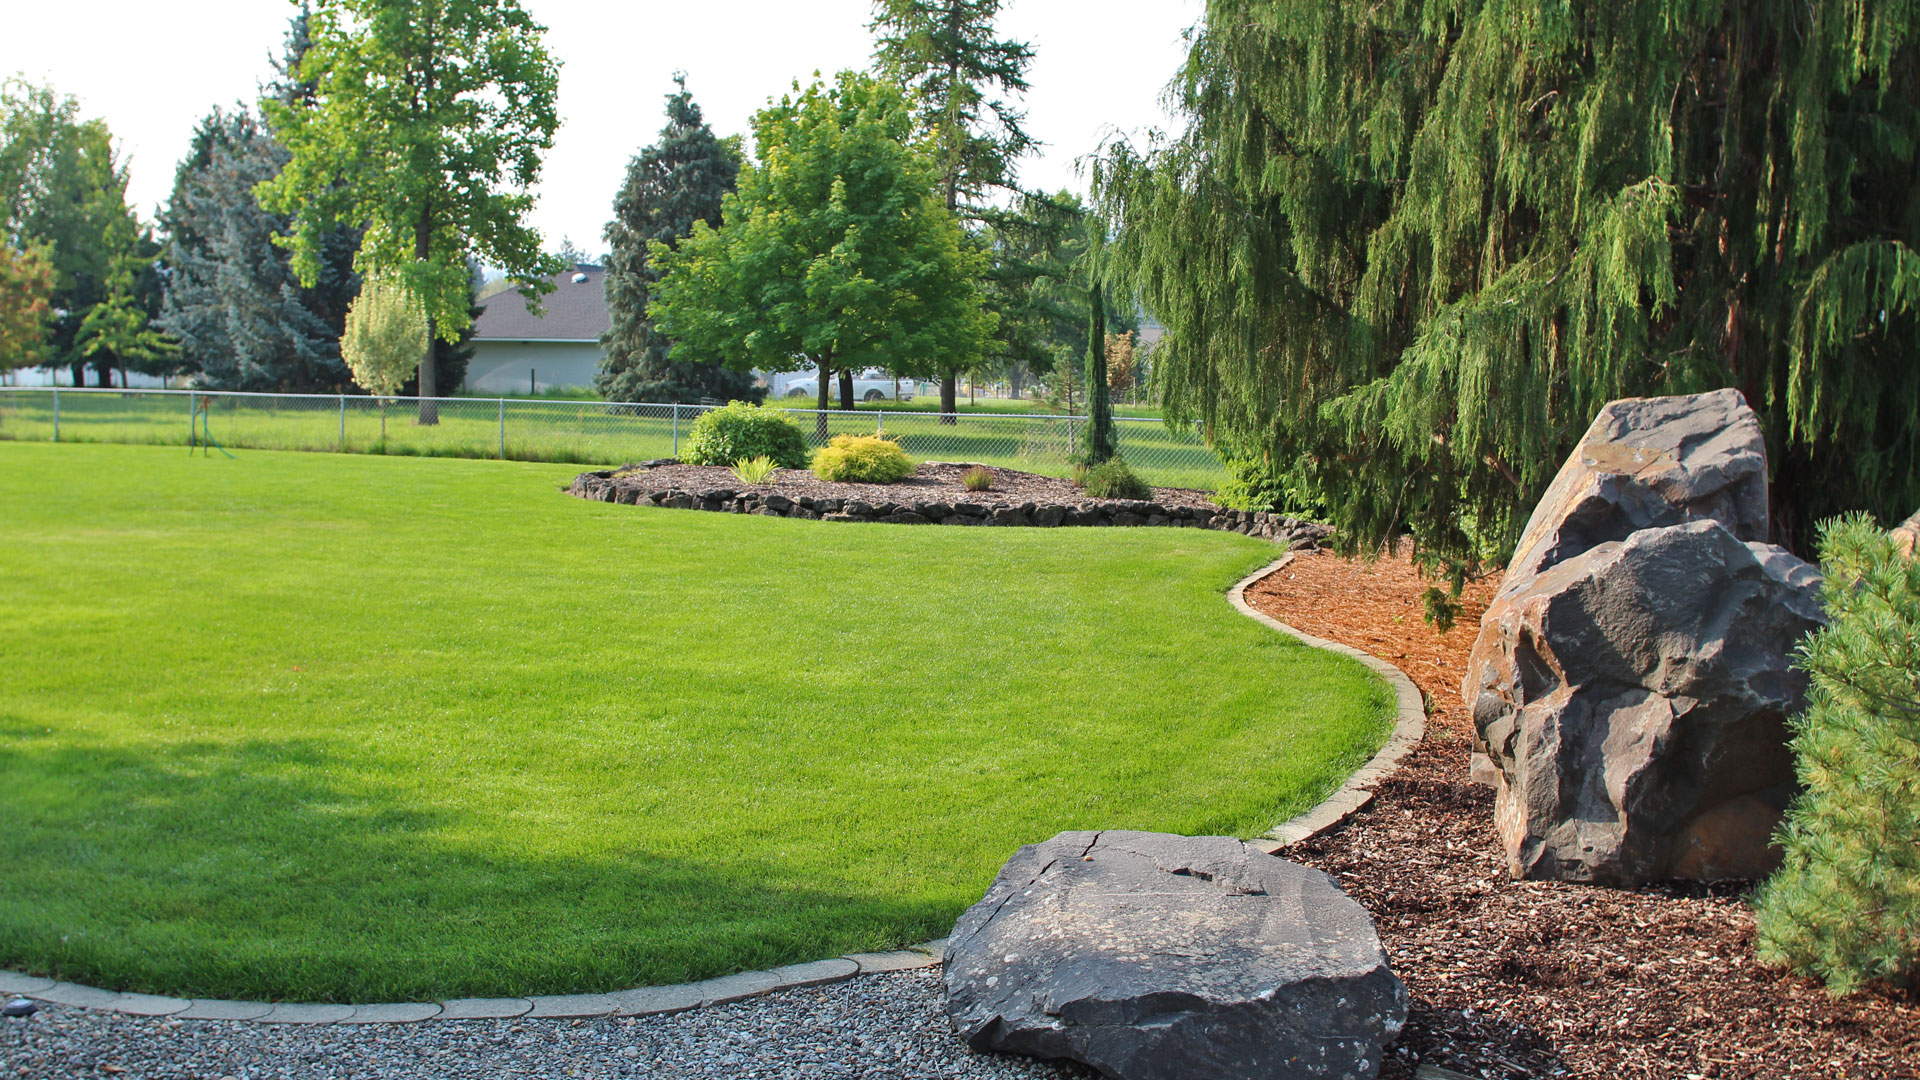 A home in Spokane Valley, WA with a healthy, green, fertilized lawn.